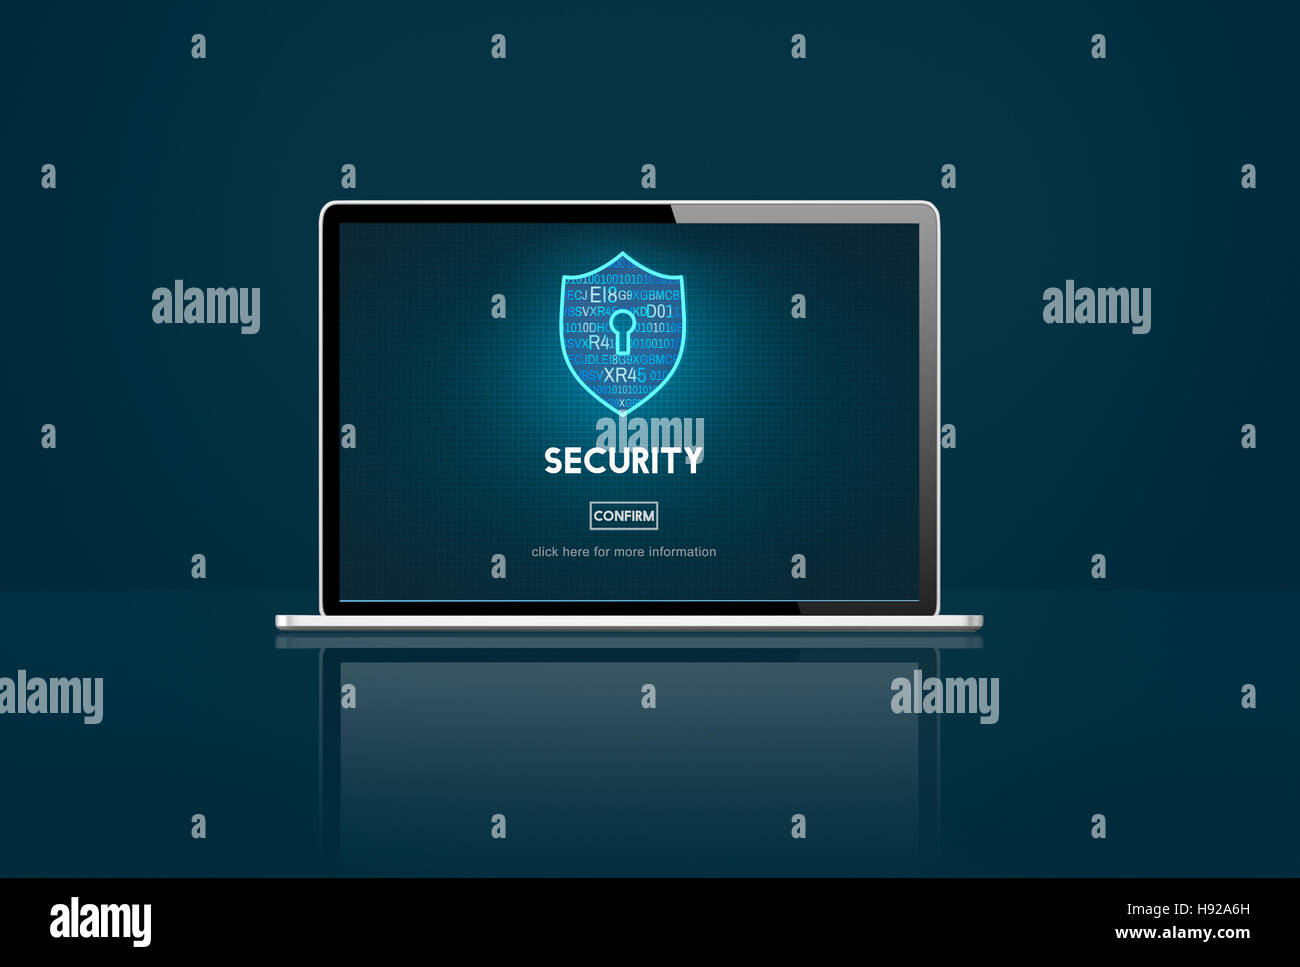 Security Firewall Protection Immunity Concept - Stock Image